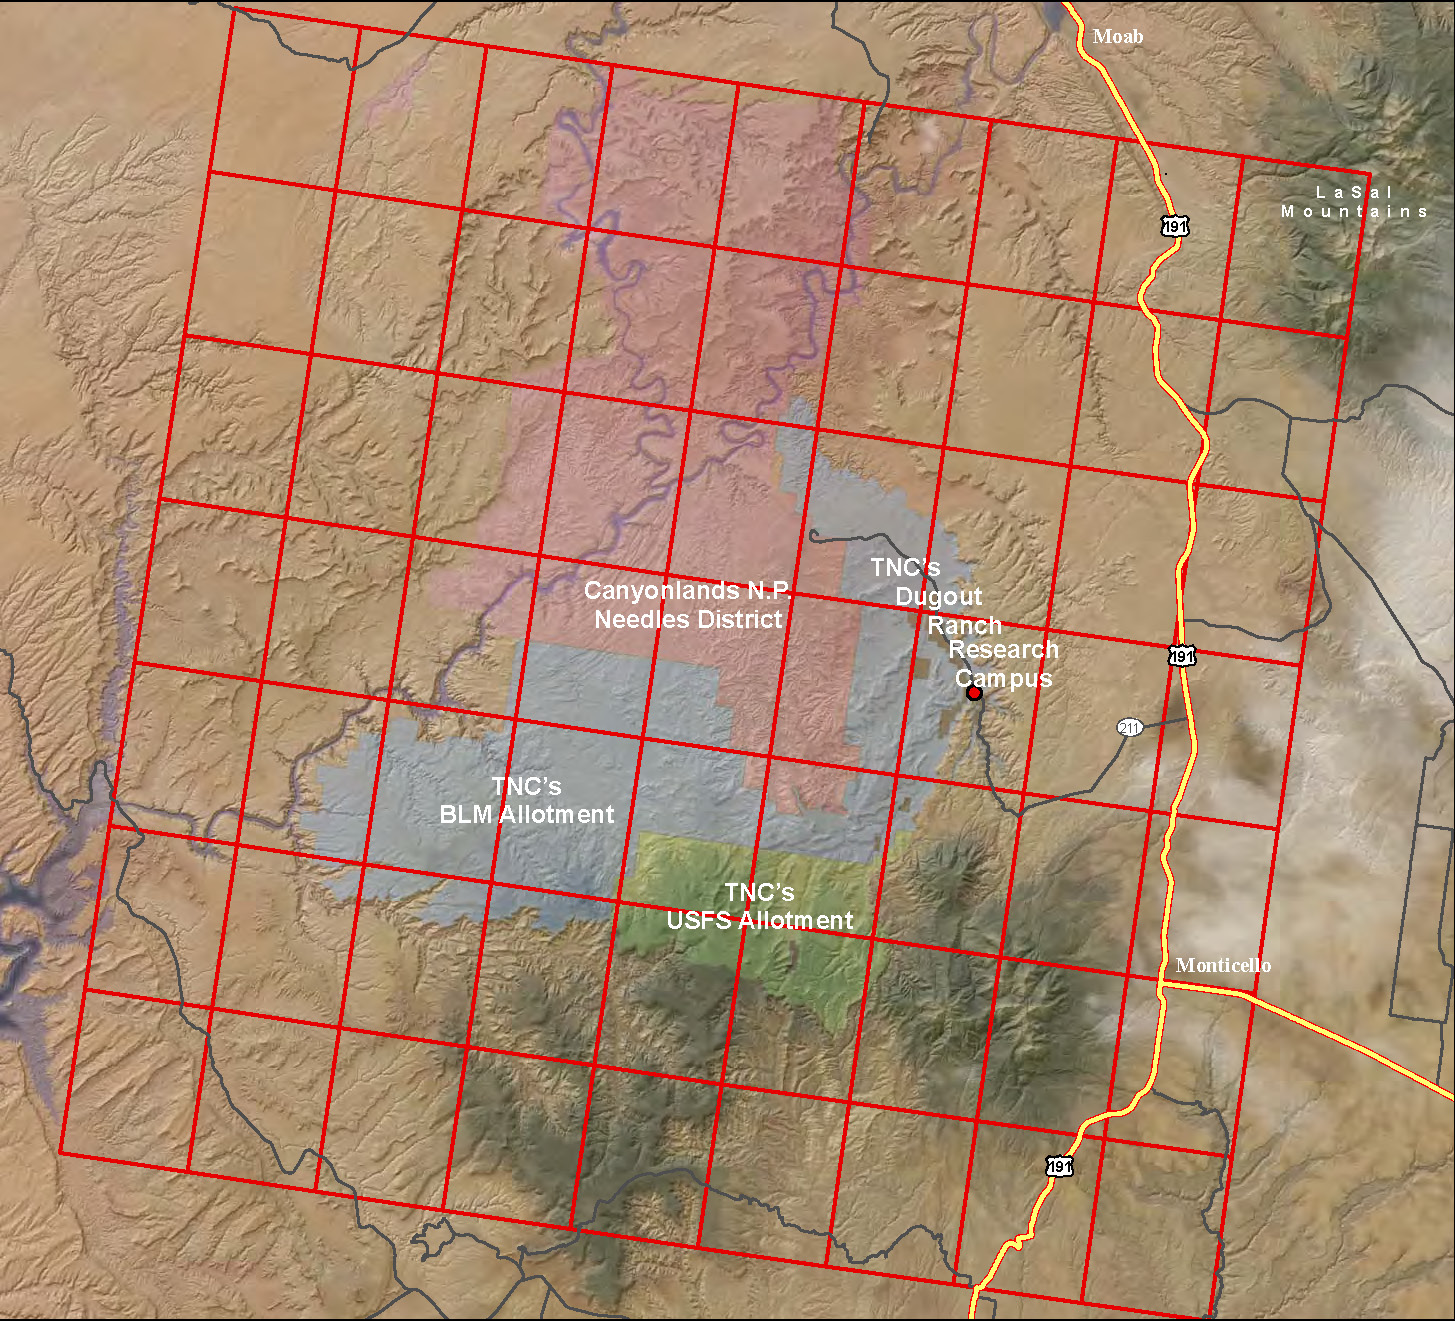 Spatial Data - Canyonlands Research Center